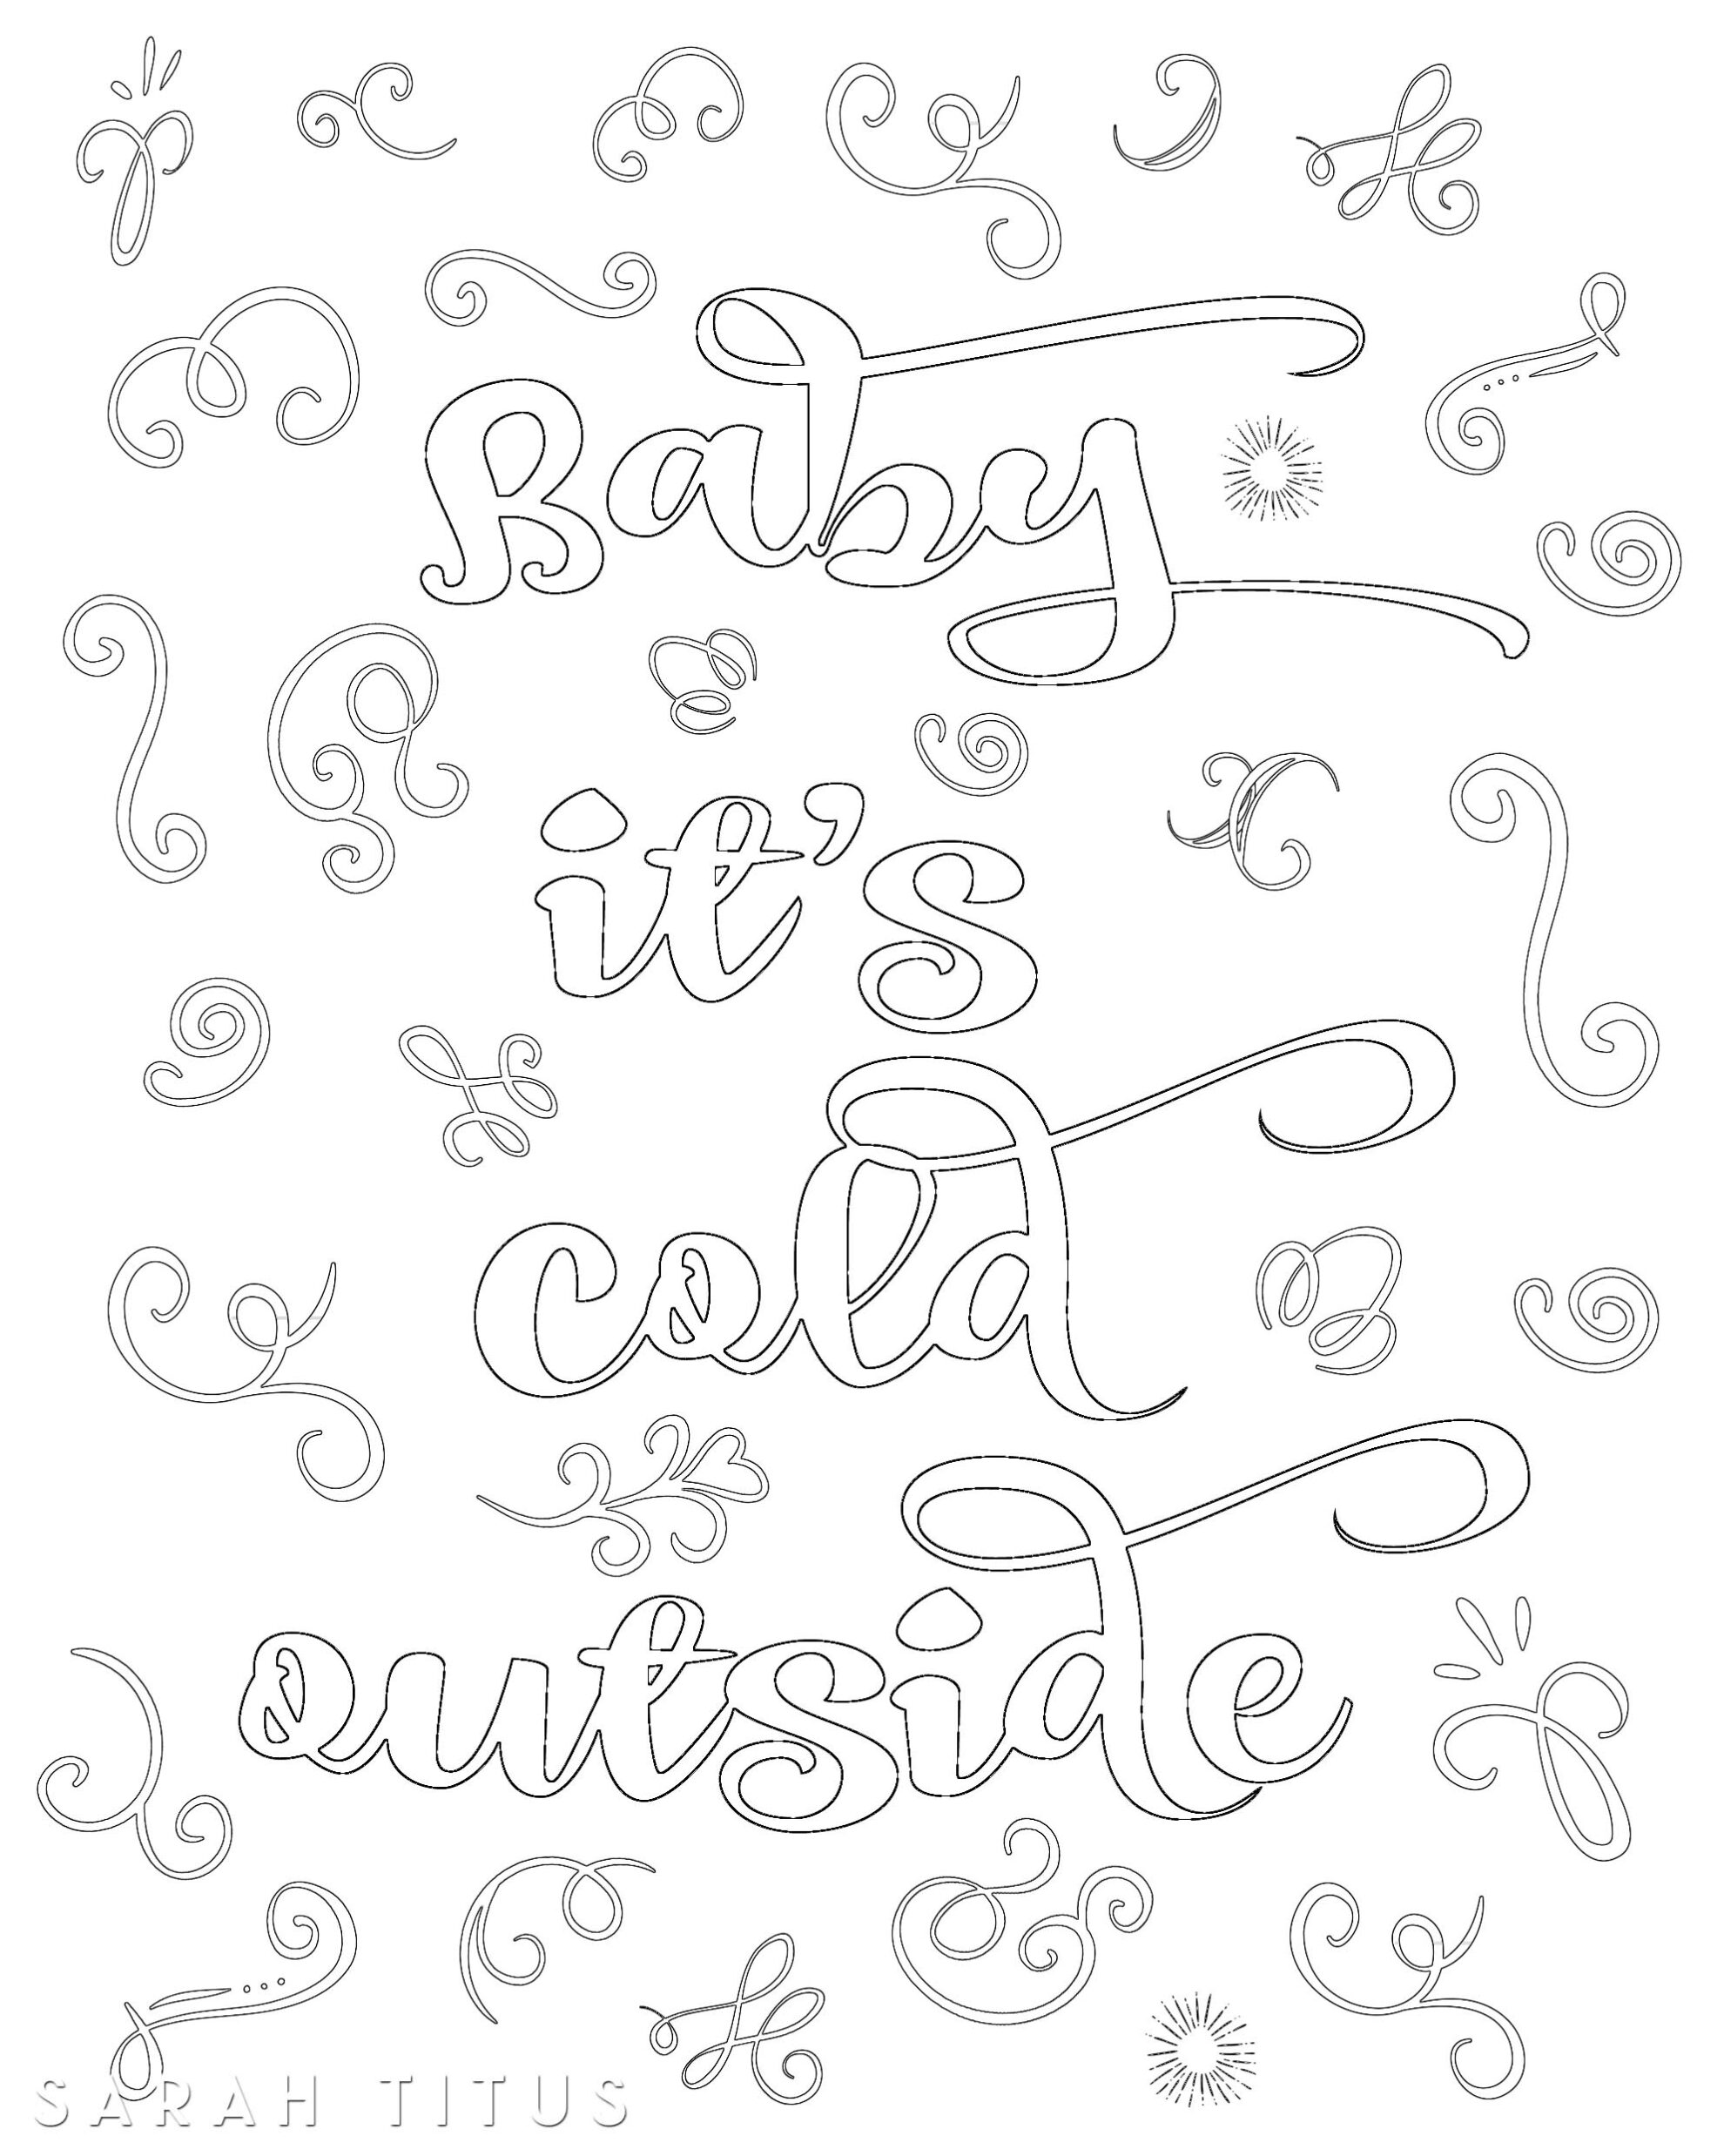 Want some fun and interesting free printable christmas coloring sheets